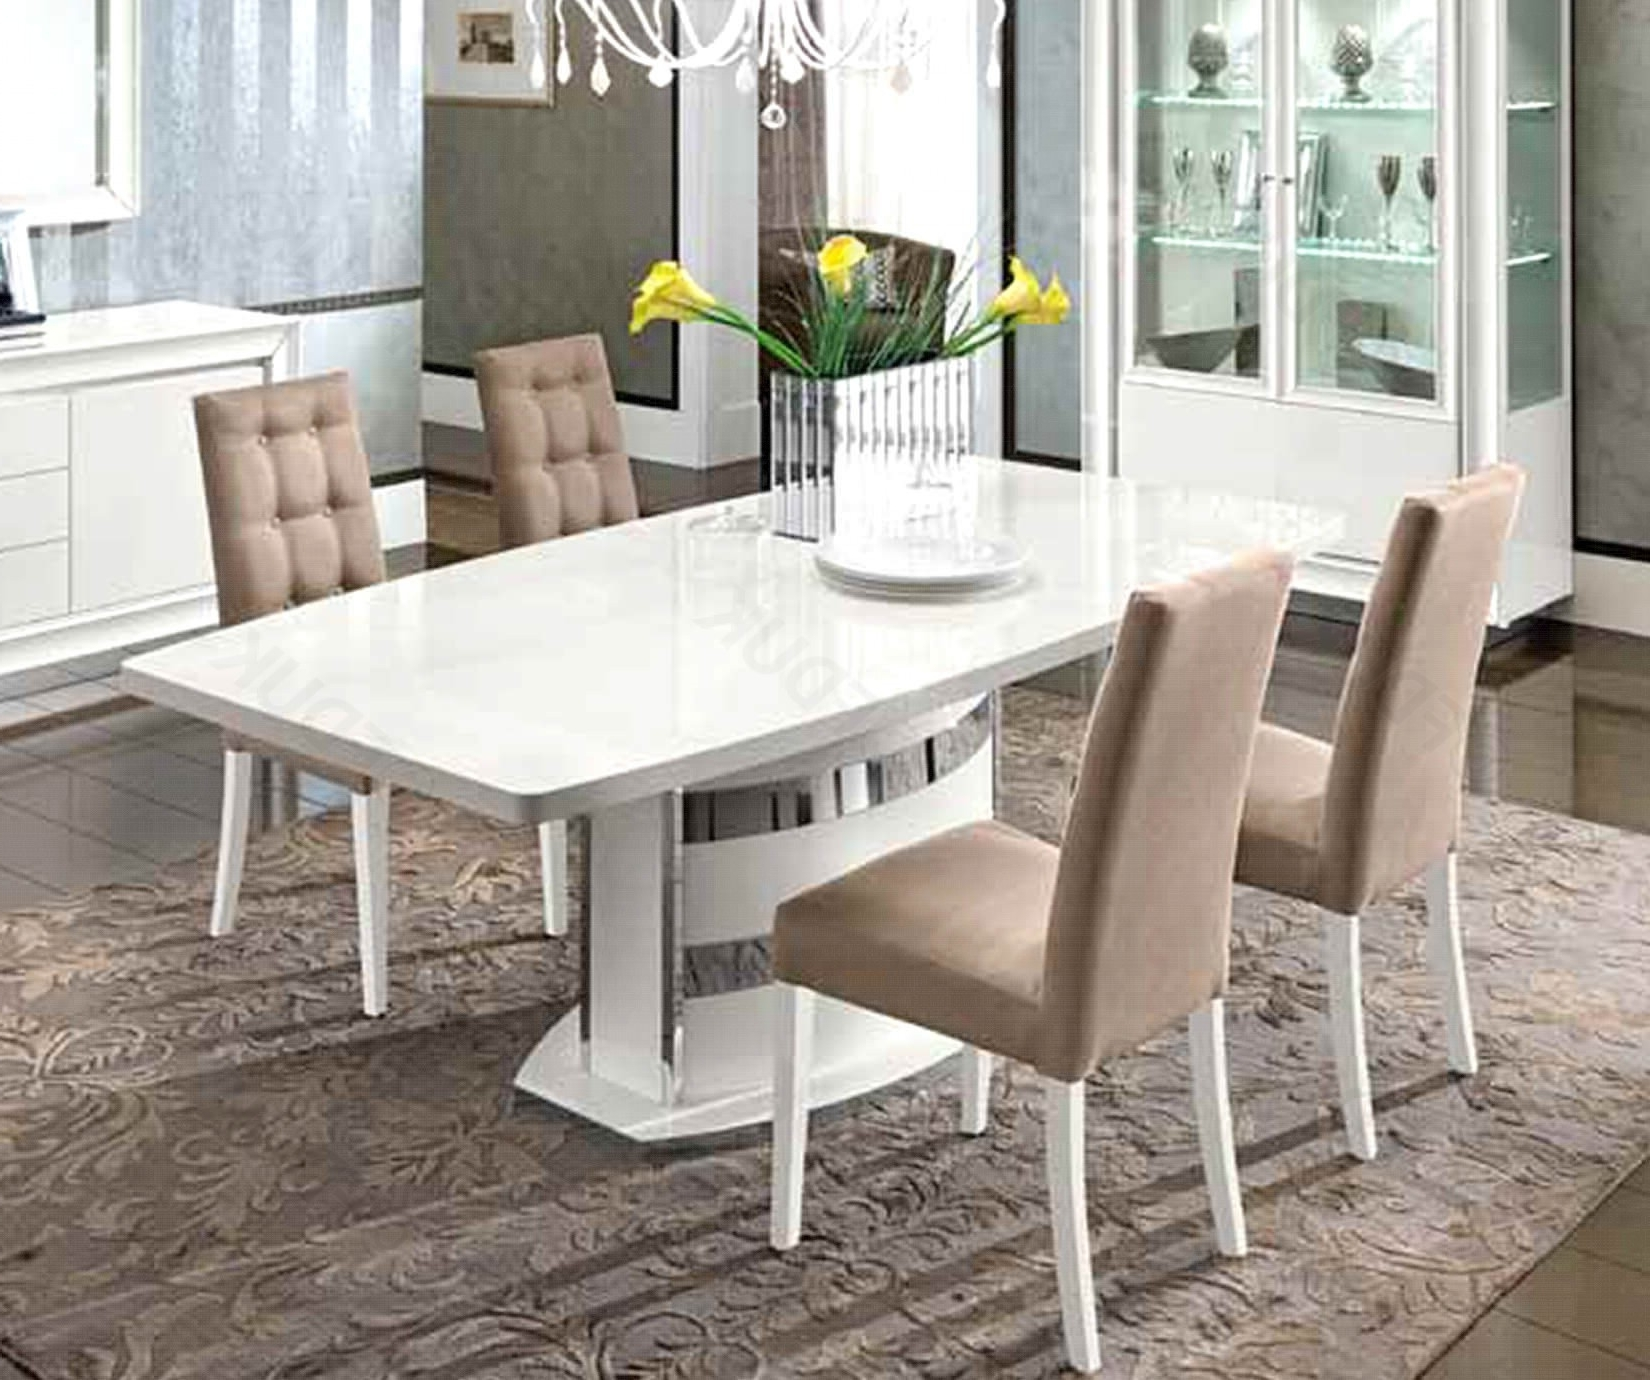 Oval White High Gloss Dining Tables Intended For Most Recent The 26 New White High Gloss Extending Dining Table – Welovedandelion (View 17 of 25)